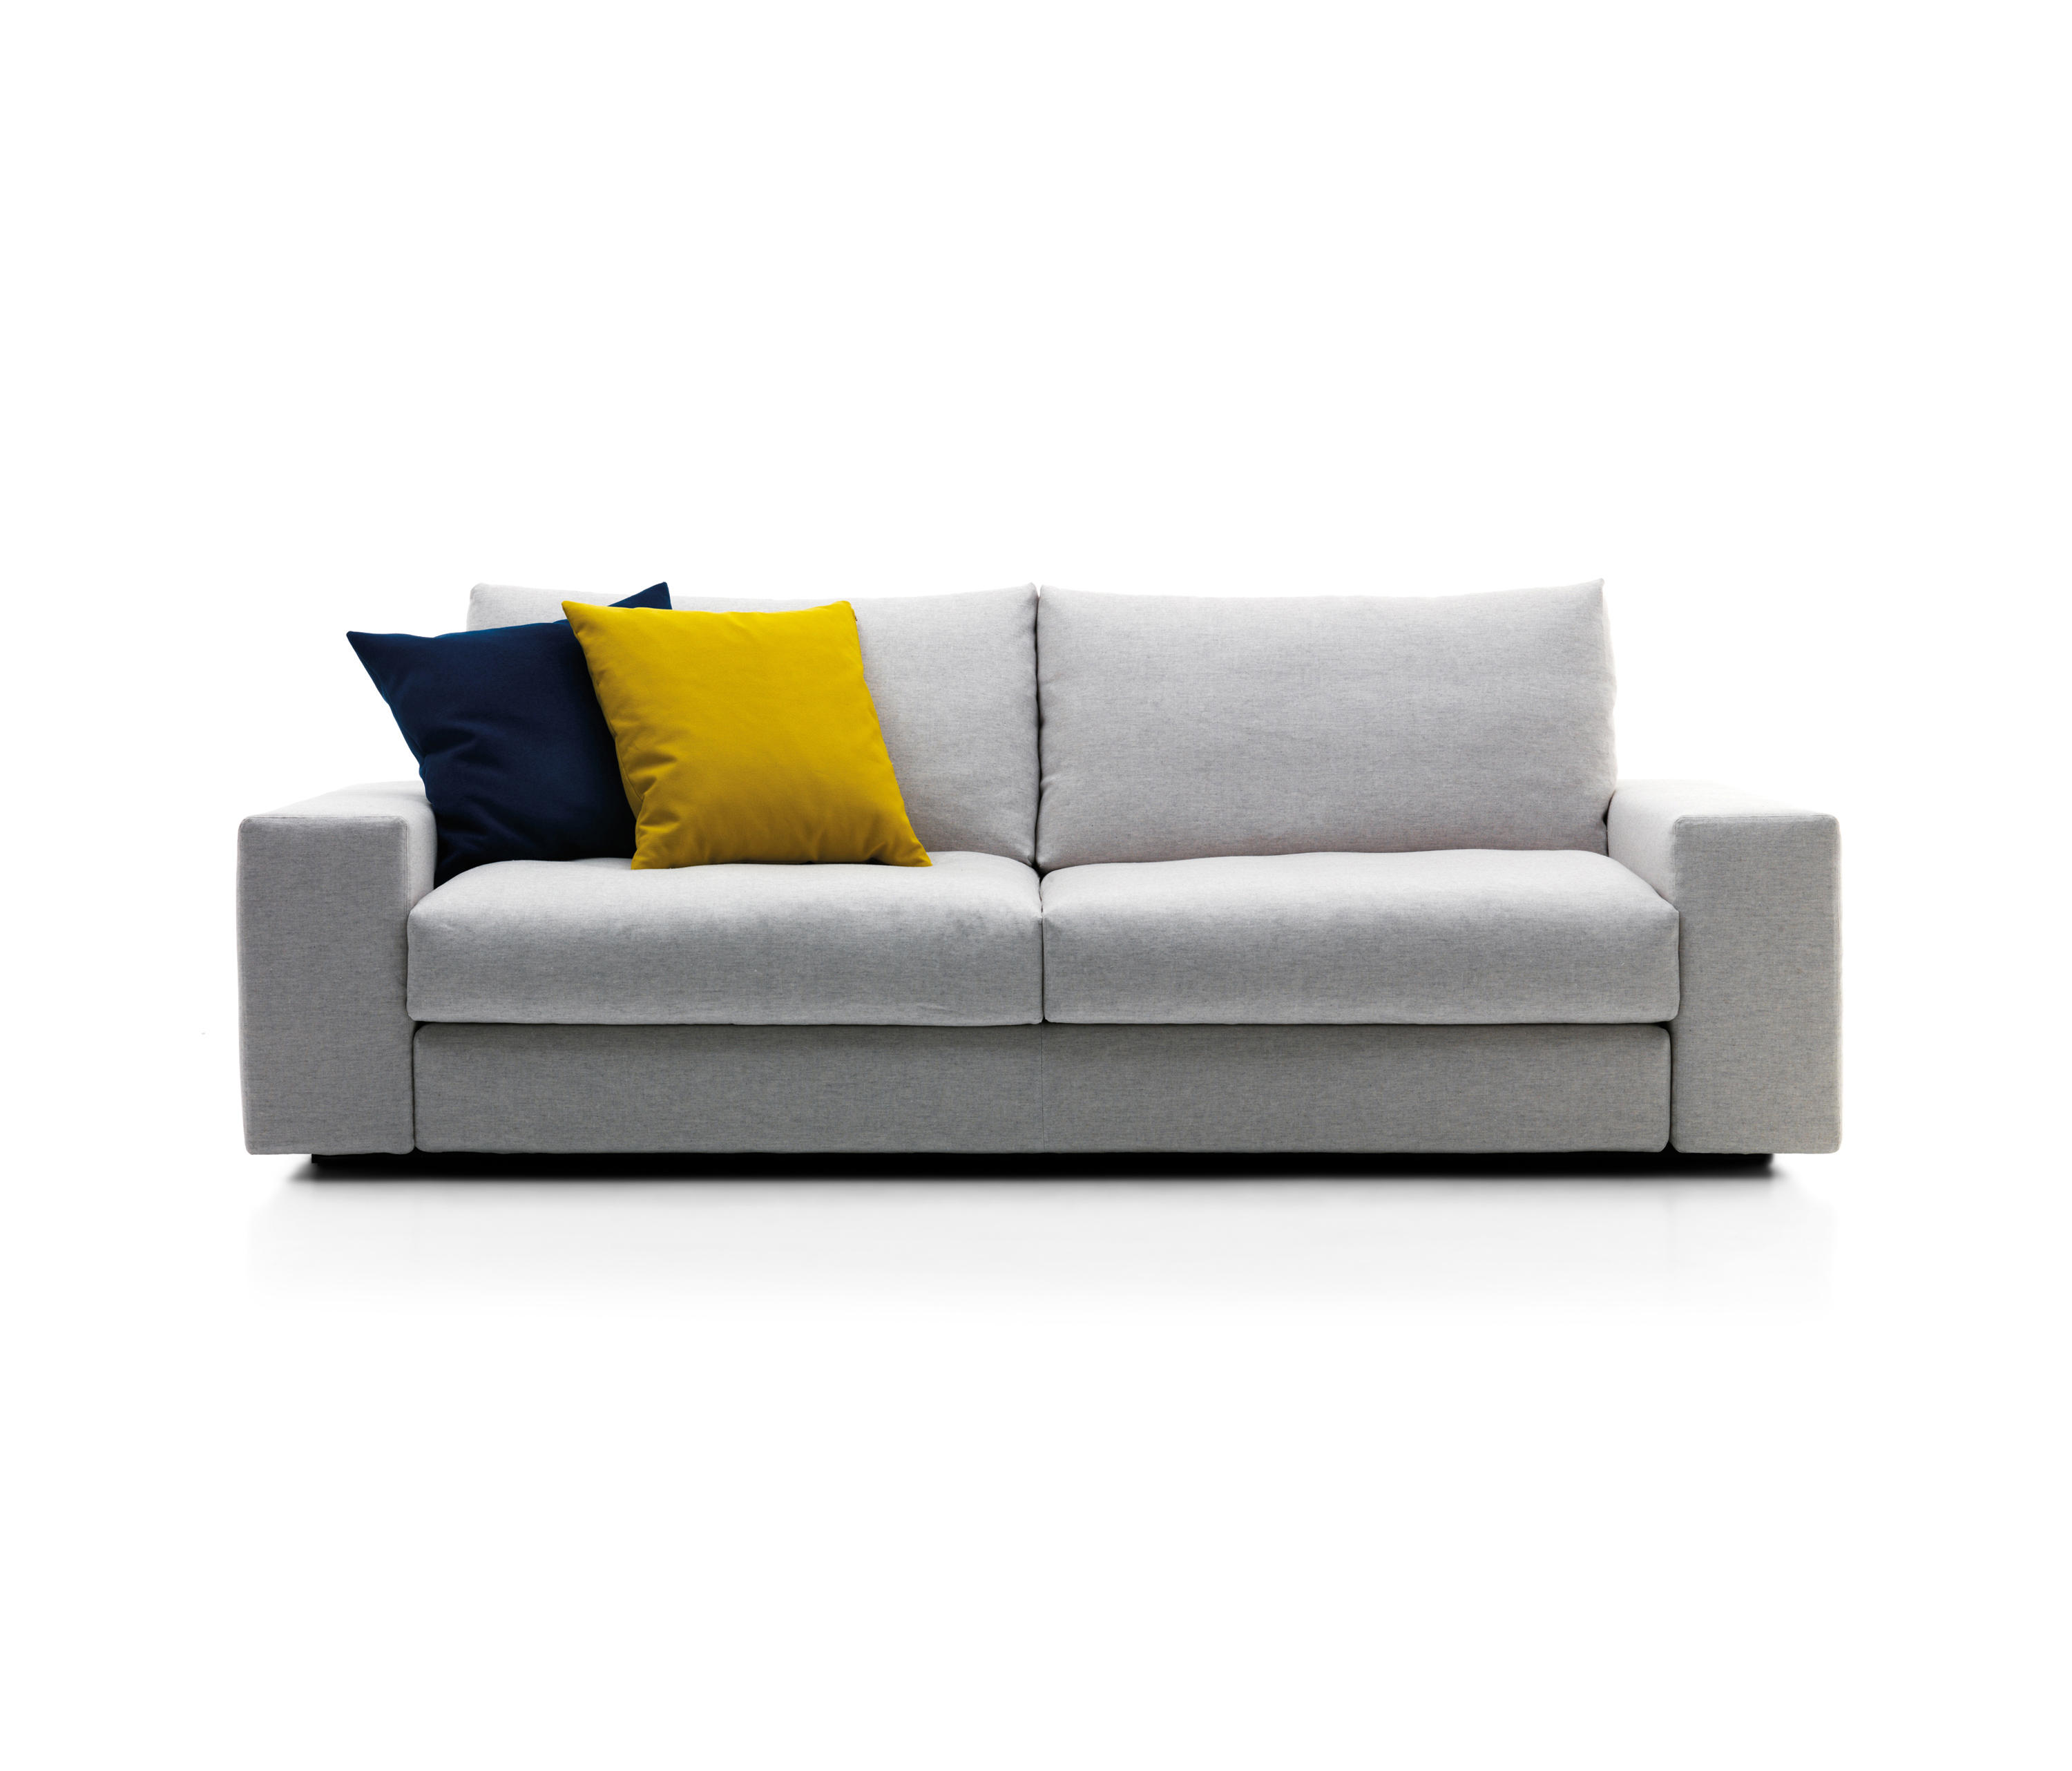 Square Sofa Square C 2 Seater Sofa Sofas From Mussi Italy Architonic